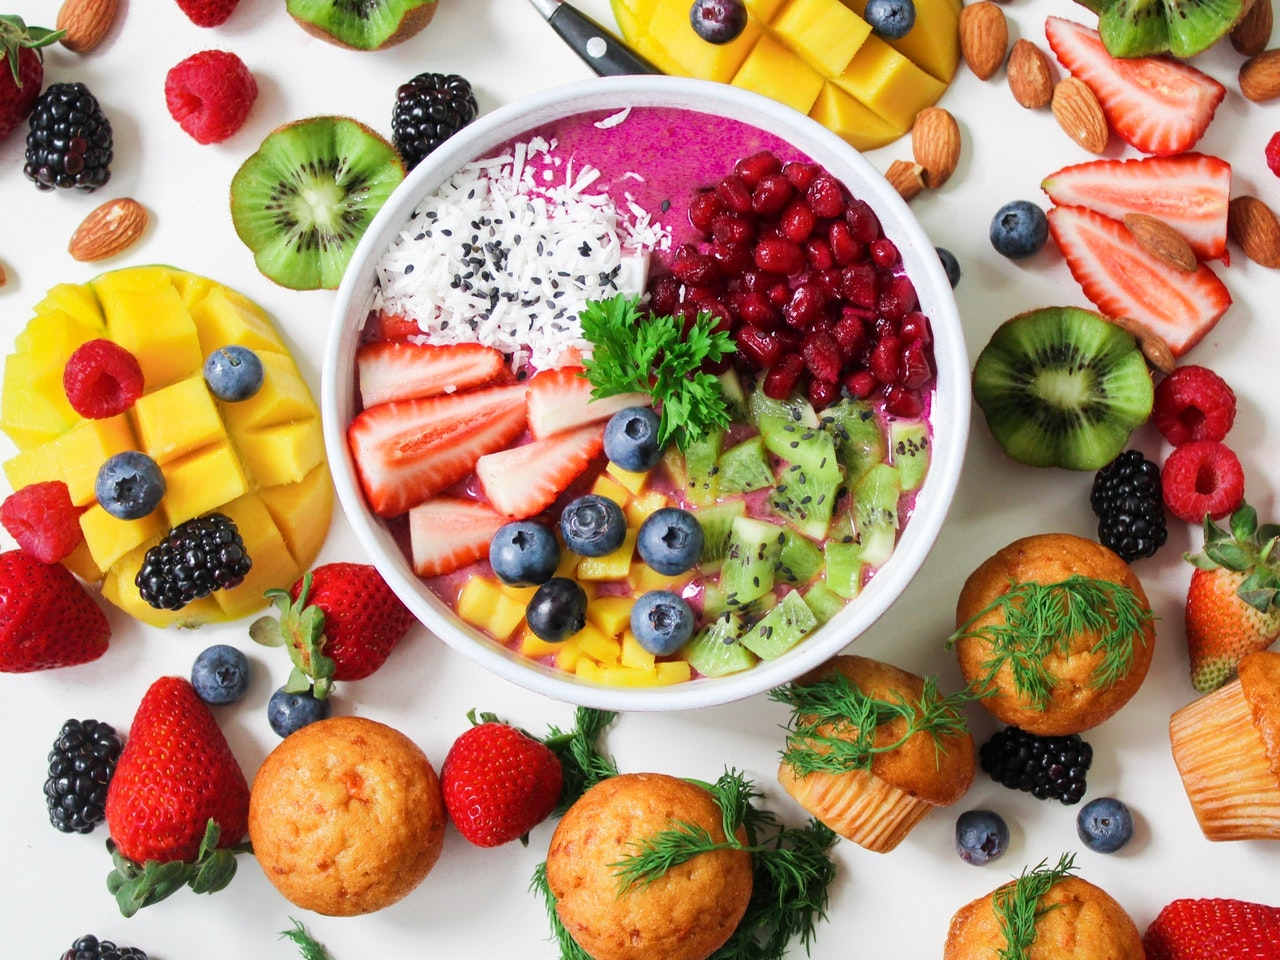 Tips For a Heart-Healthy Diet